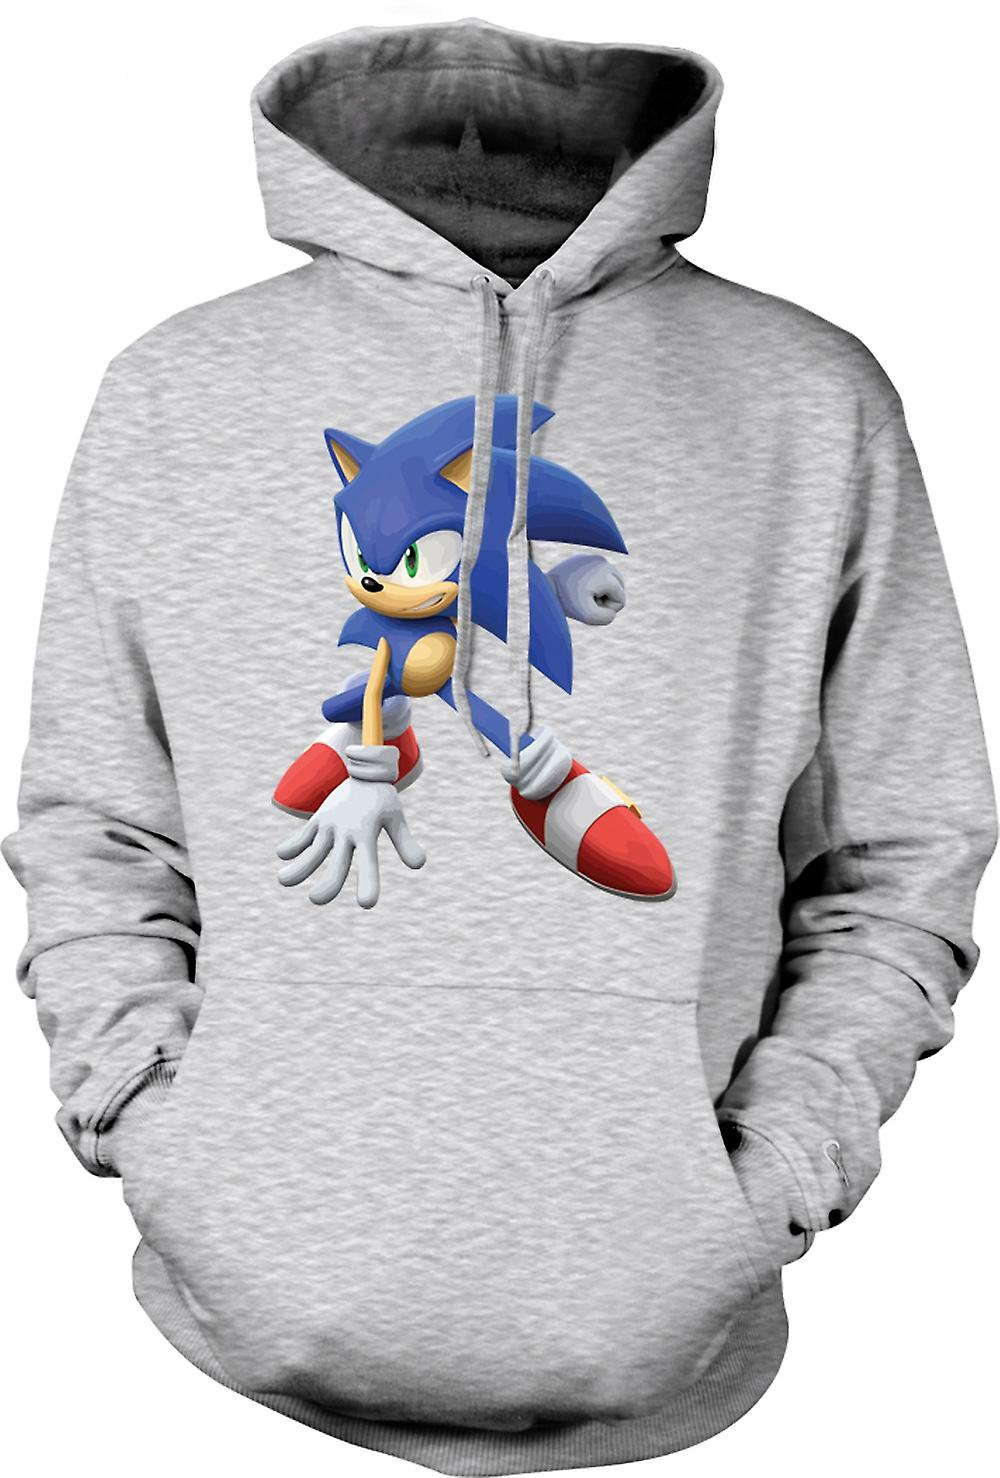 Mens hettegenser - Sonic The Hedgehog - spiller